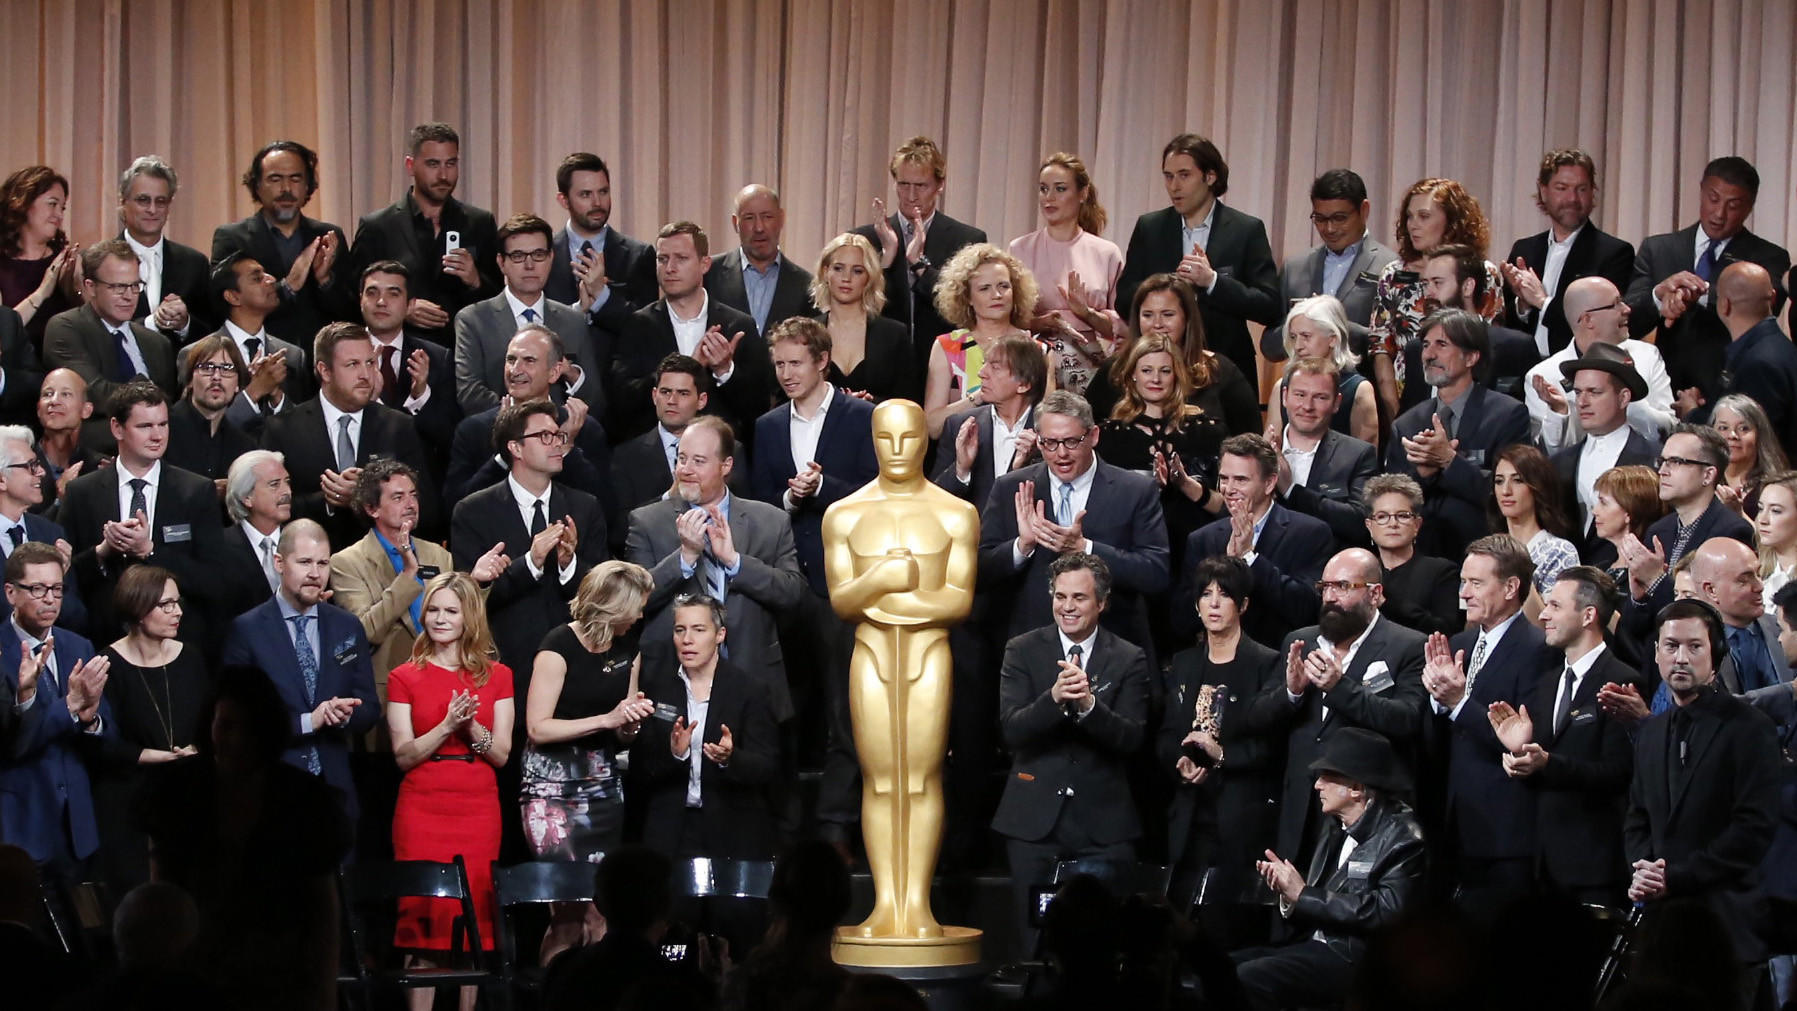 Oscars: organisers invite record numbers to vote after diversity row